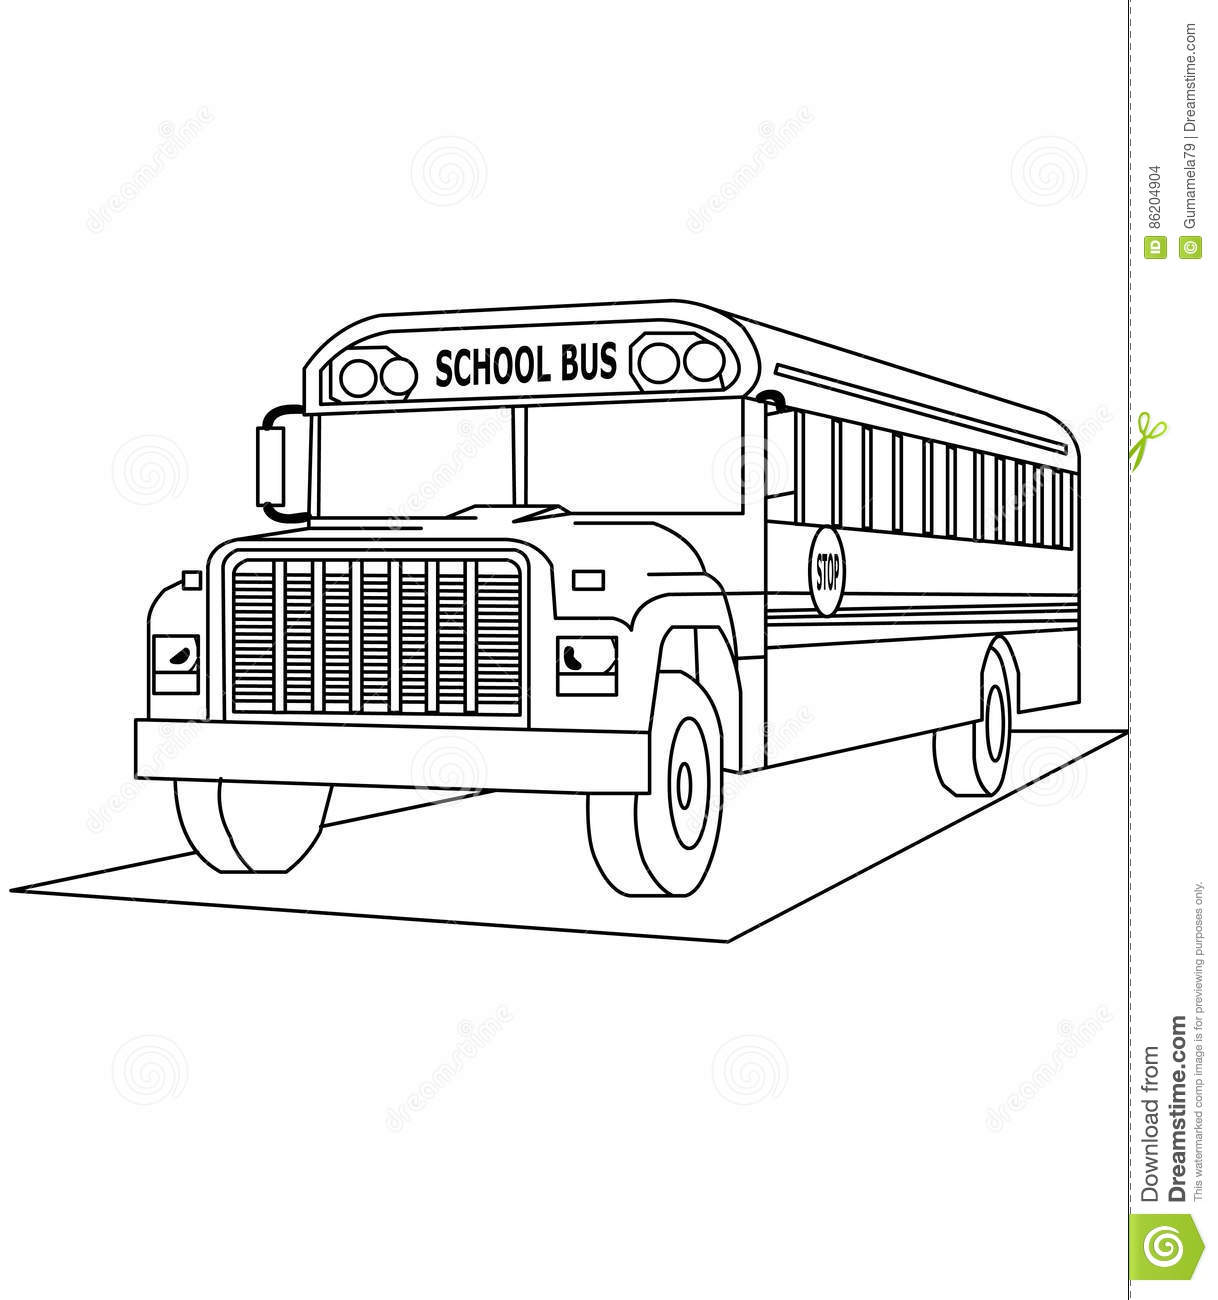 School bus coloring page stock illustration. Illustration of ...